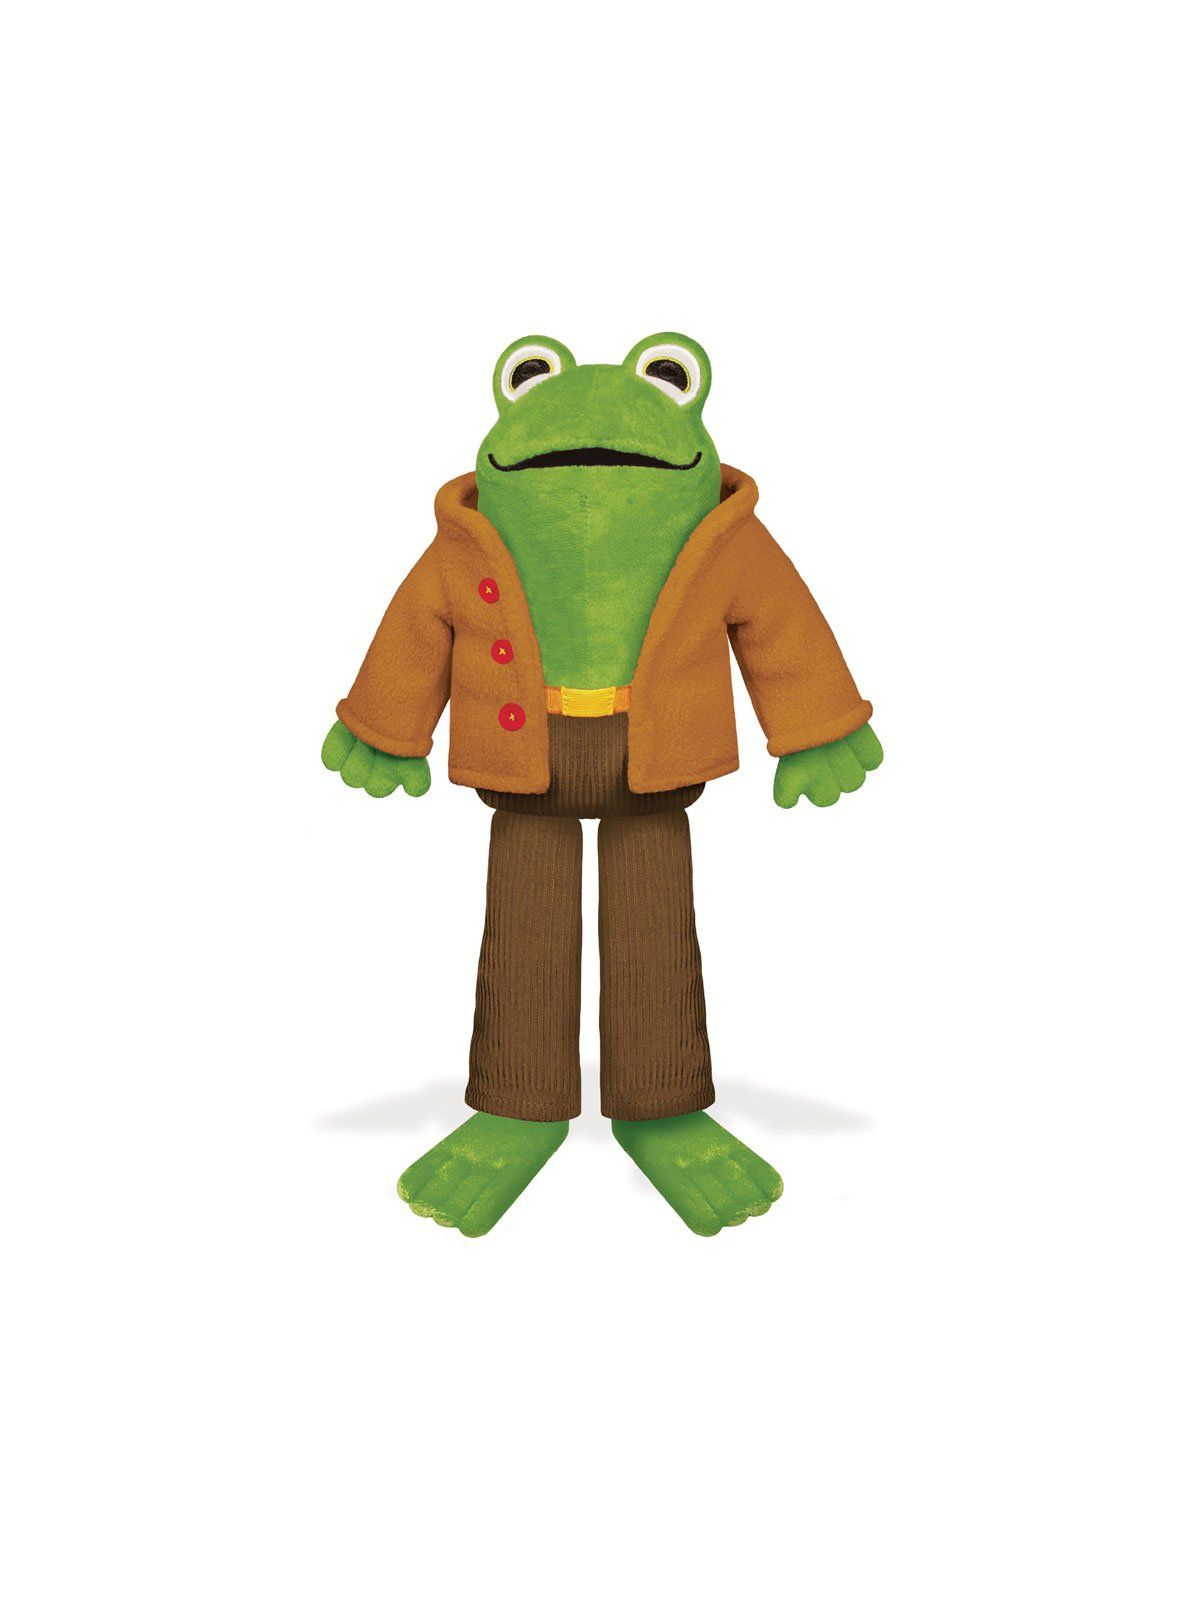 Frog From Frog And Toad Soft Toy In 2021 Frog Stuffed Animal Frog Plush Frog And Toad